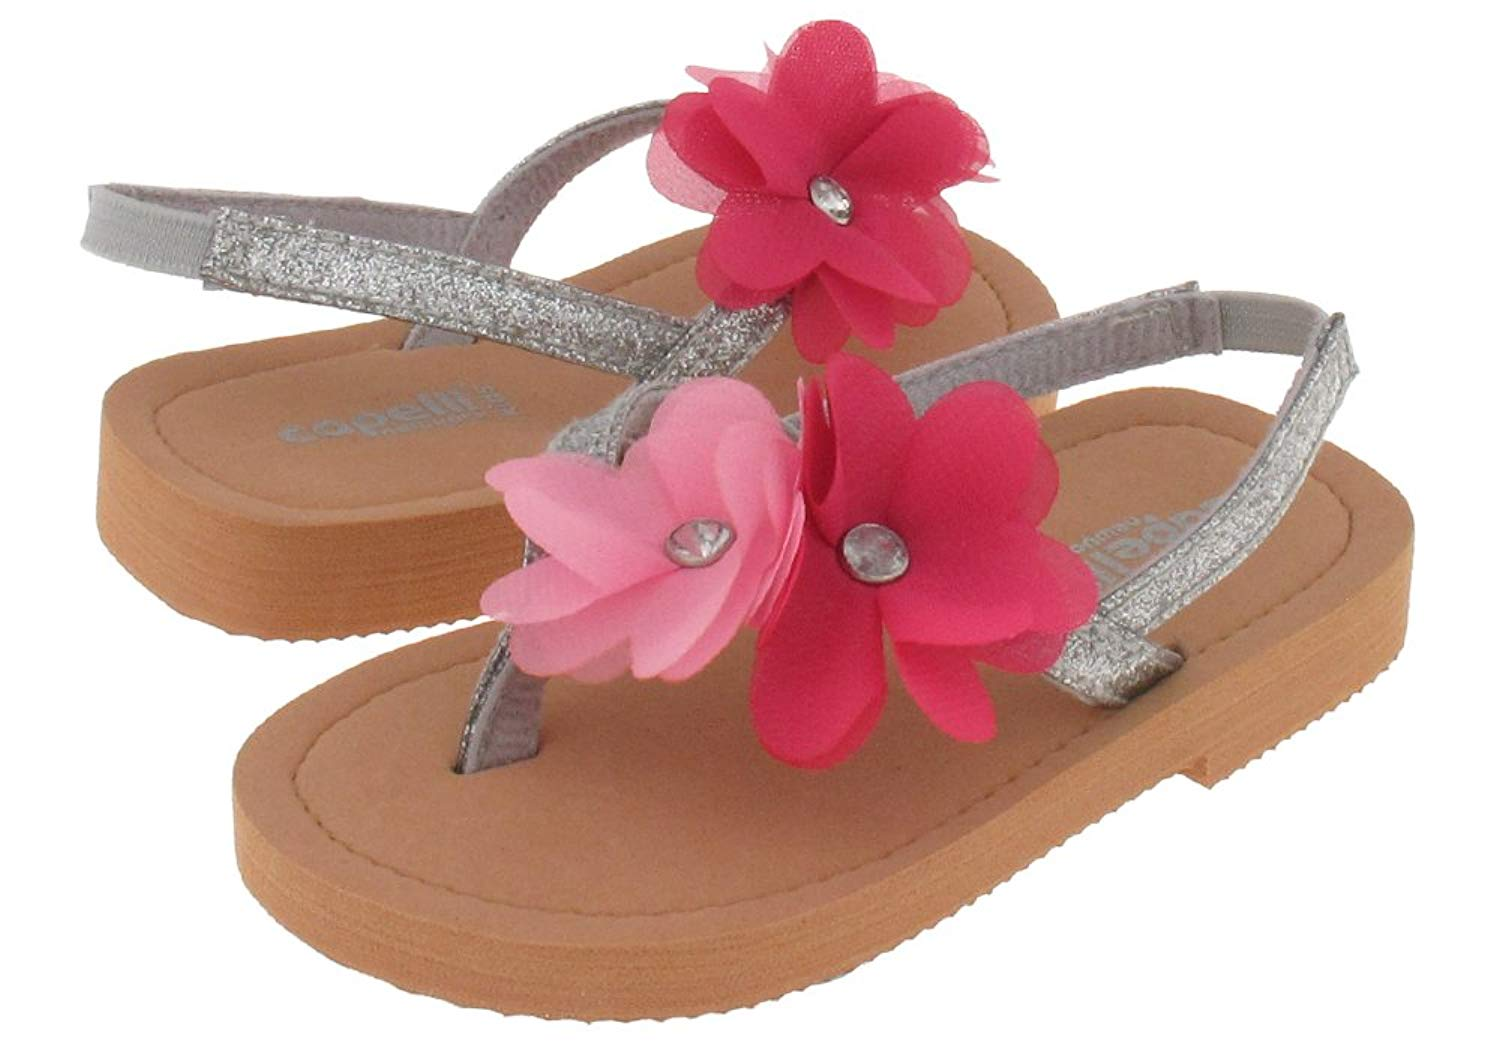 Capelli New York Glitter patent thong with flowers Toddler Girls Flip Flops